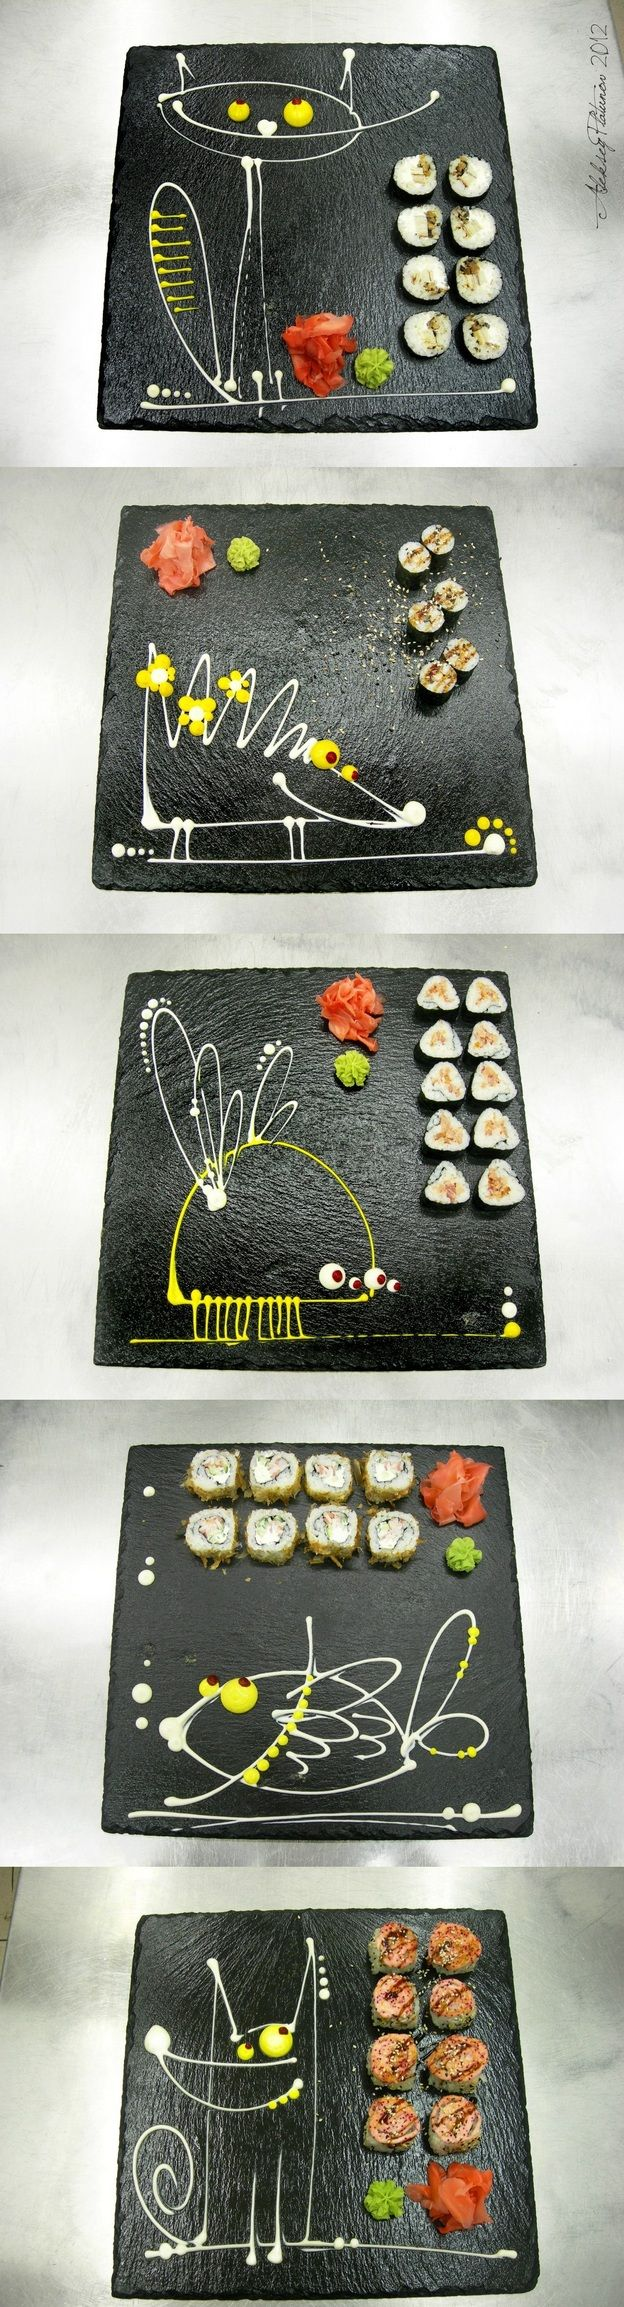 this sushi is funny too....playing with your food